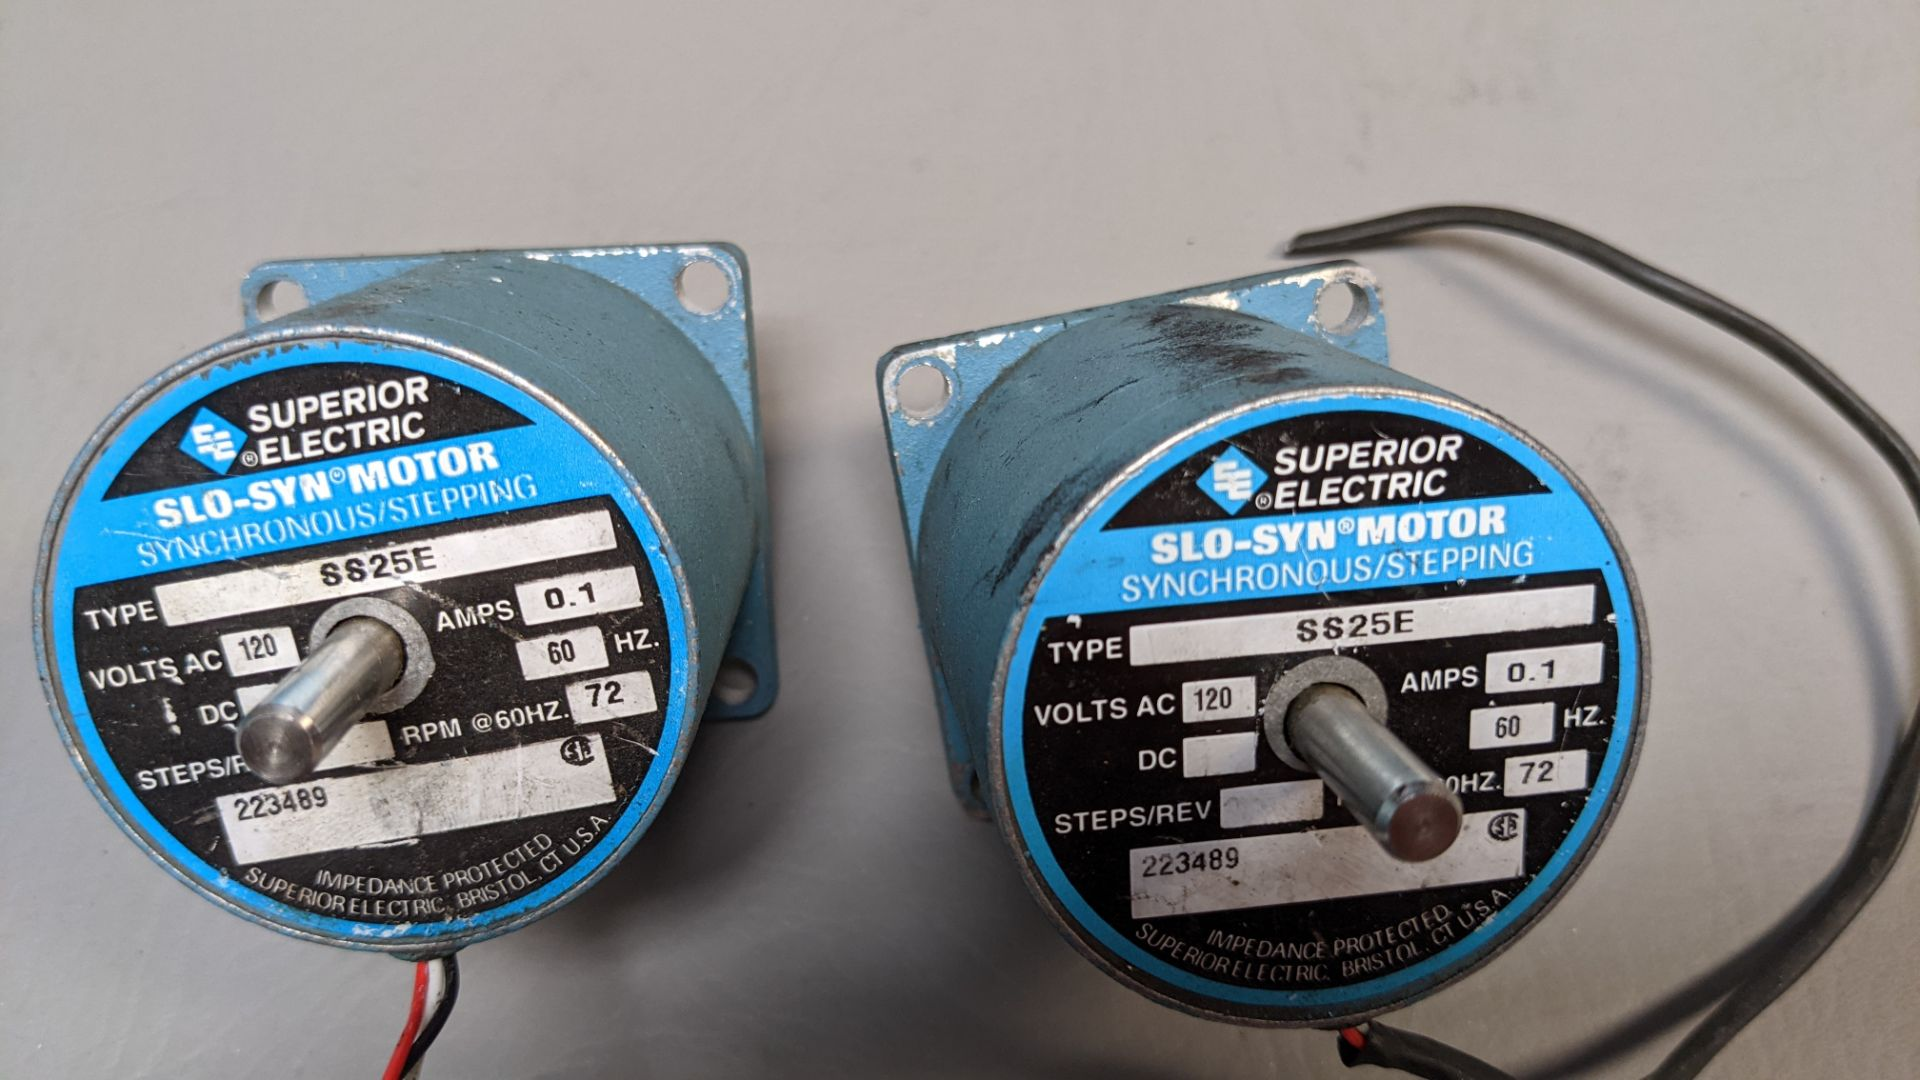 LOT OF 2 SUPERIOR ELECTRIC STEPPER MOTORS - Image 2 of 4